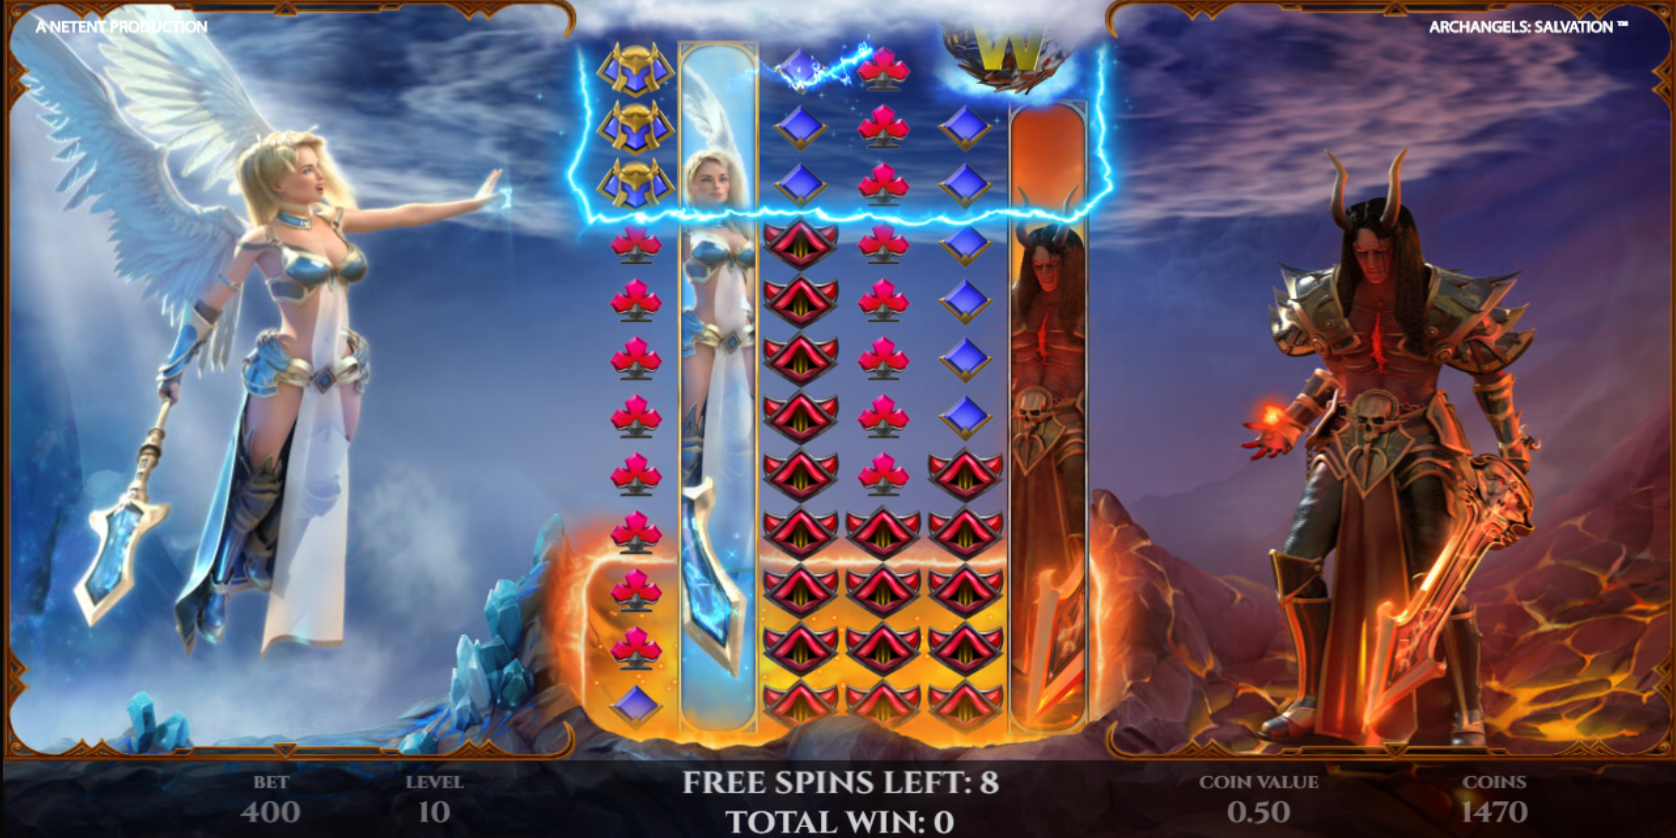 Archangels Salvation slot game Special Effects